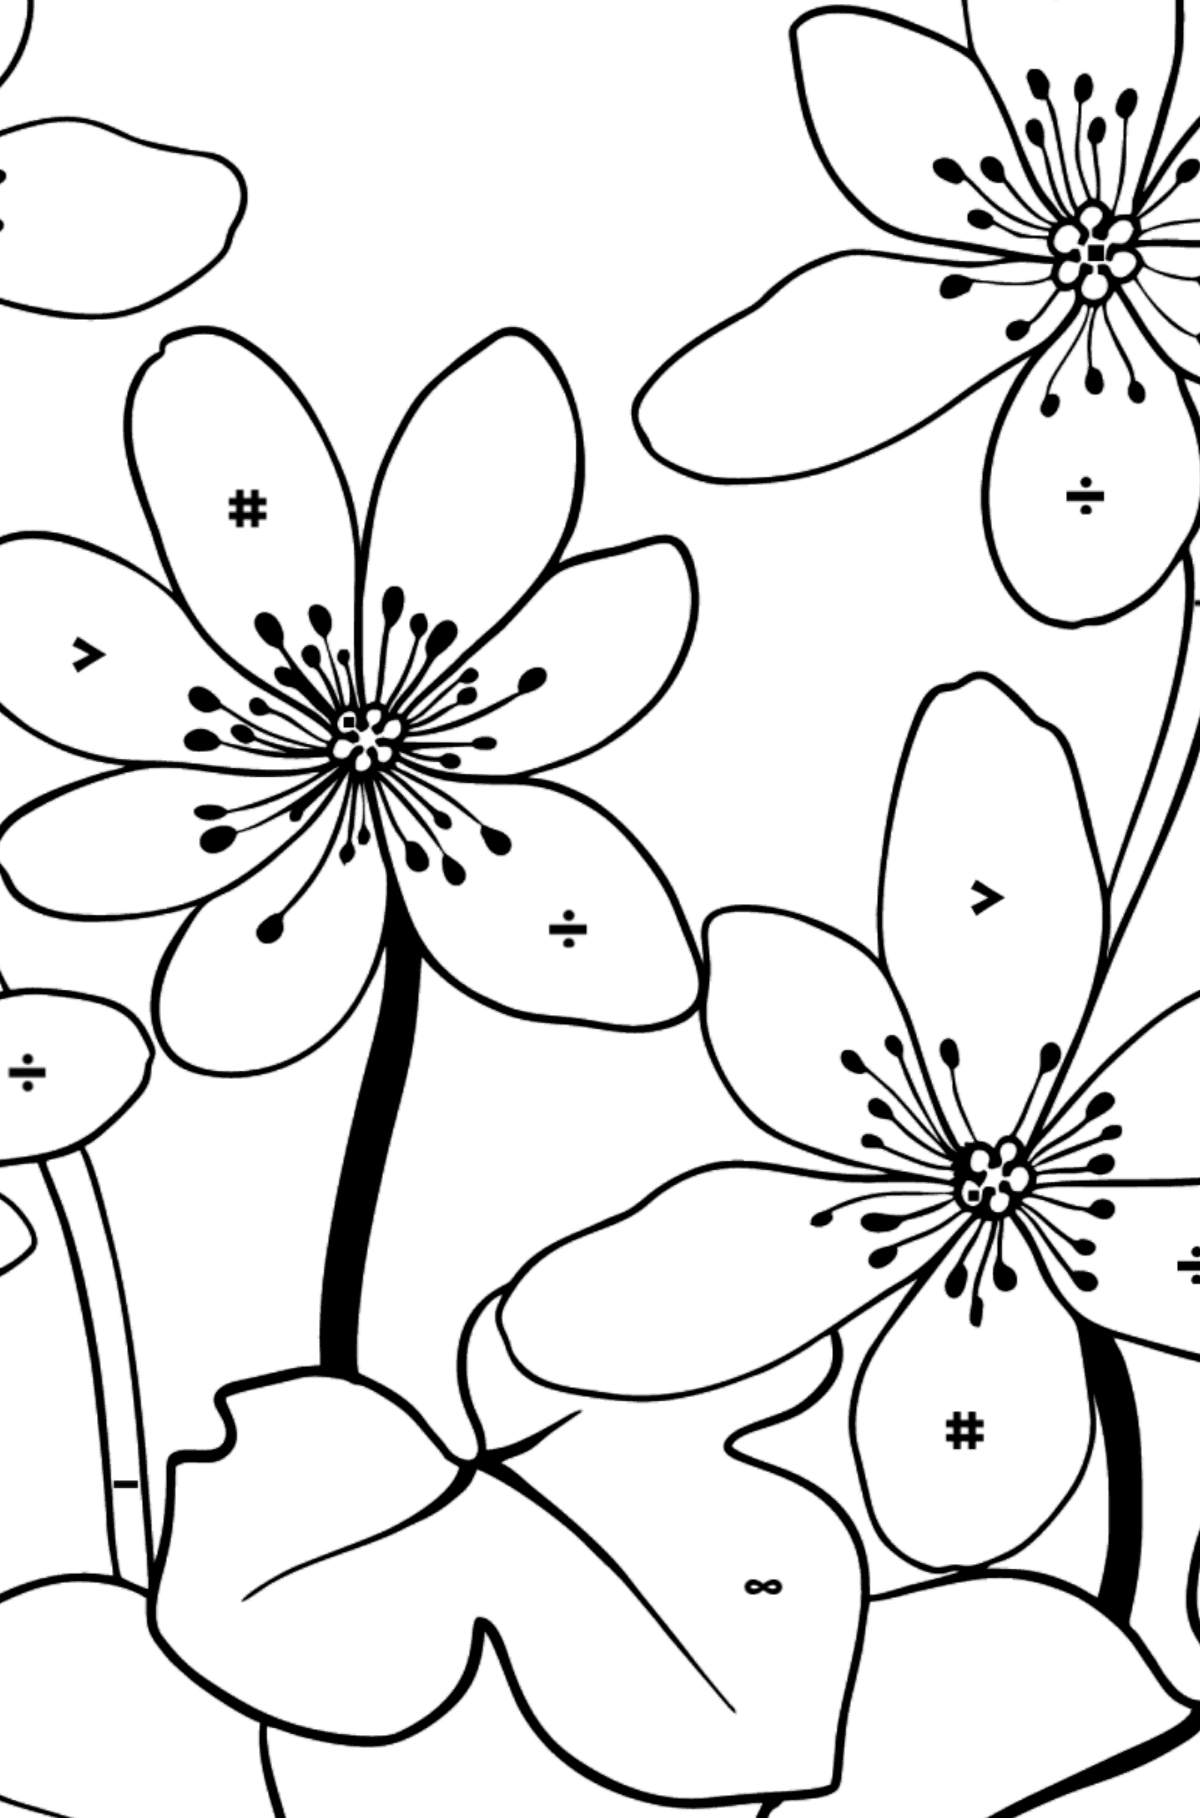 Flower Coloring Page - Hepatica - Coloring by Symbols for Kids